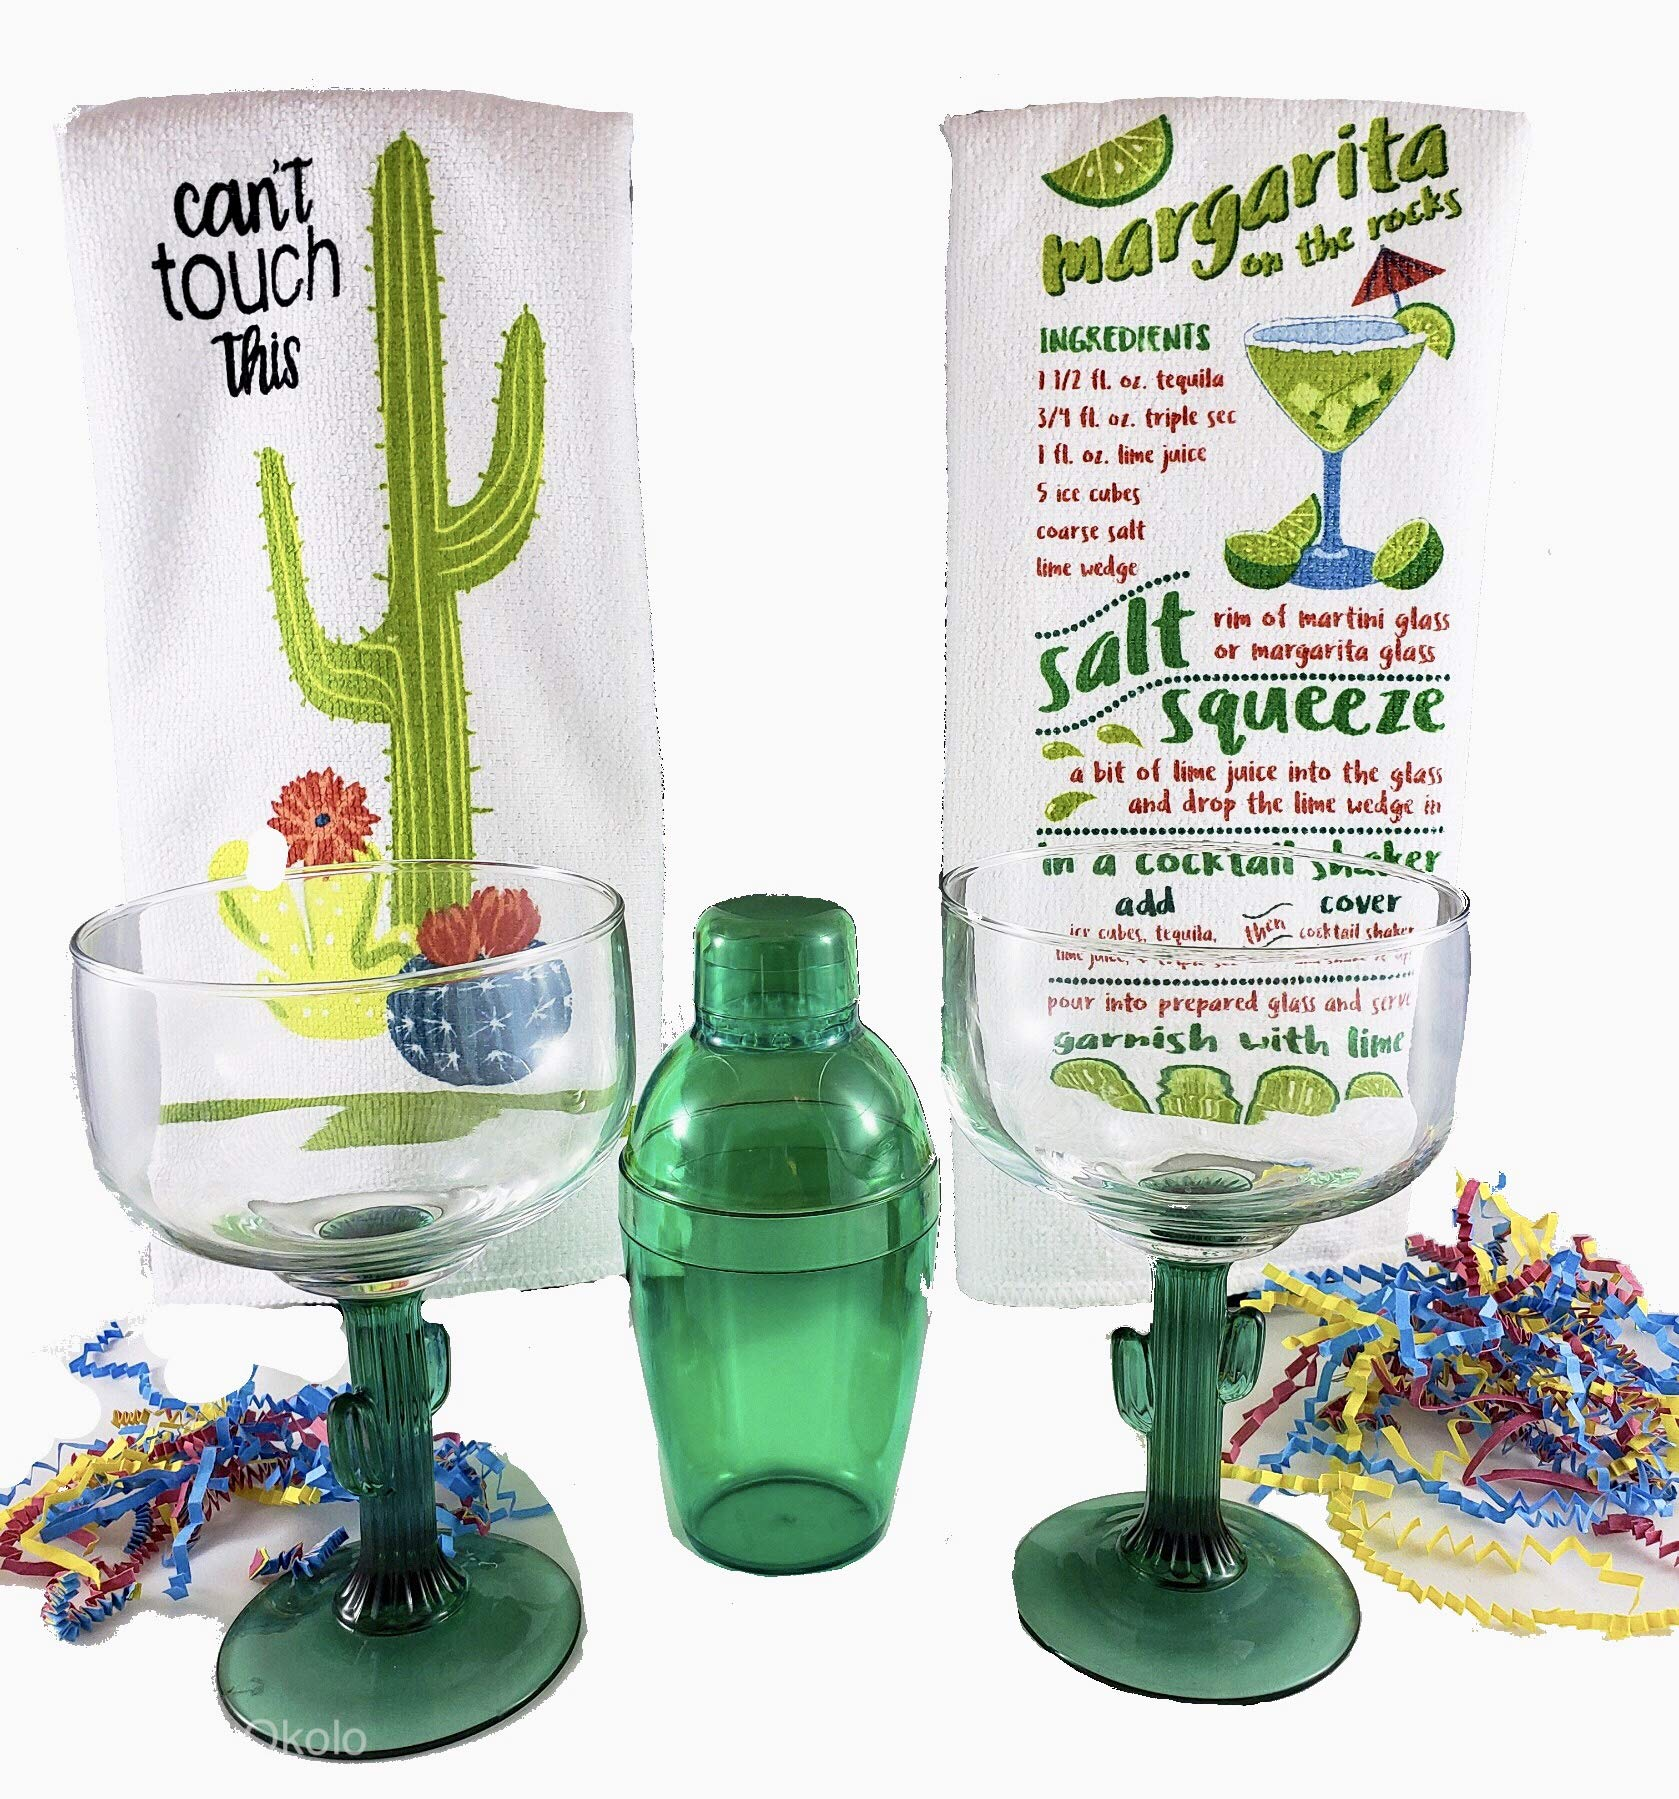 Cinco de Mayo Cactus Margarita Glass And Cocktail Shaker Gift Set Includes Set of 2 Cactus Margarita Glasses, Green Cocktail Shaker Kit, 2 Margarita Recipe Kitchen Towels With Additional Bonus Recipe by 365 Party Lab-Cinco De Mayo